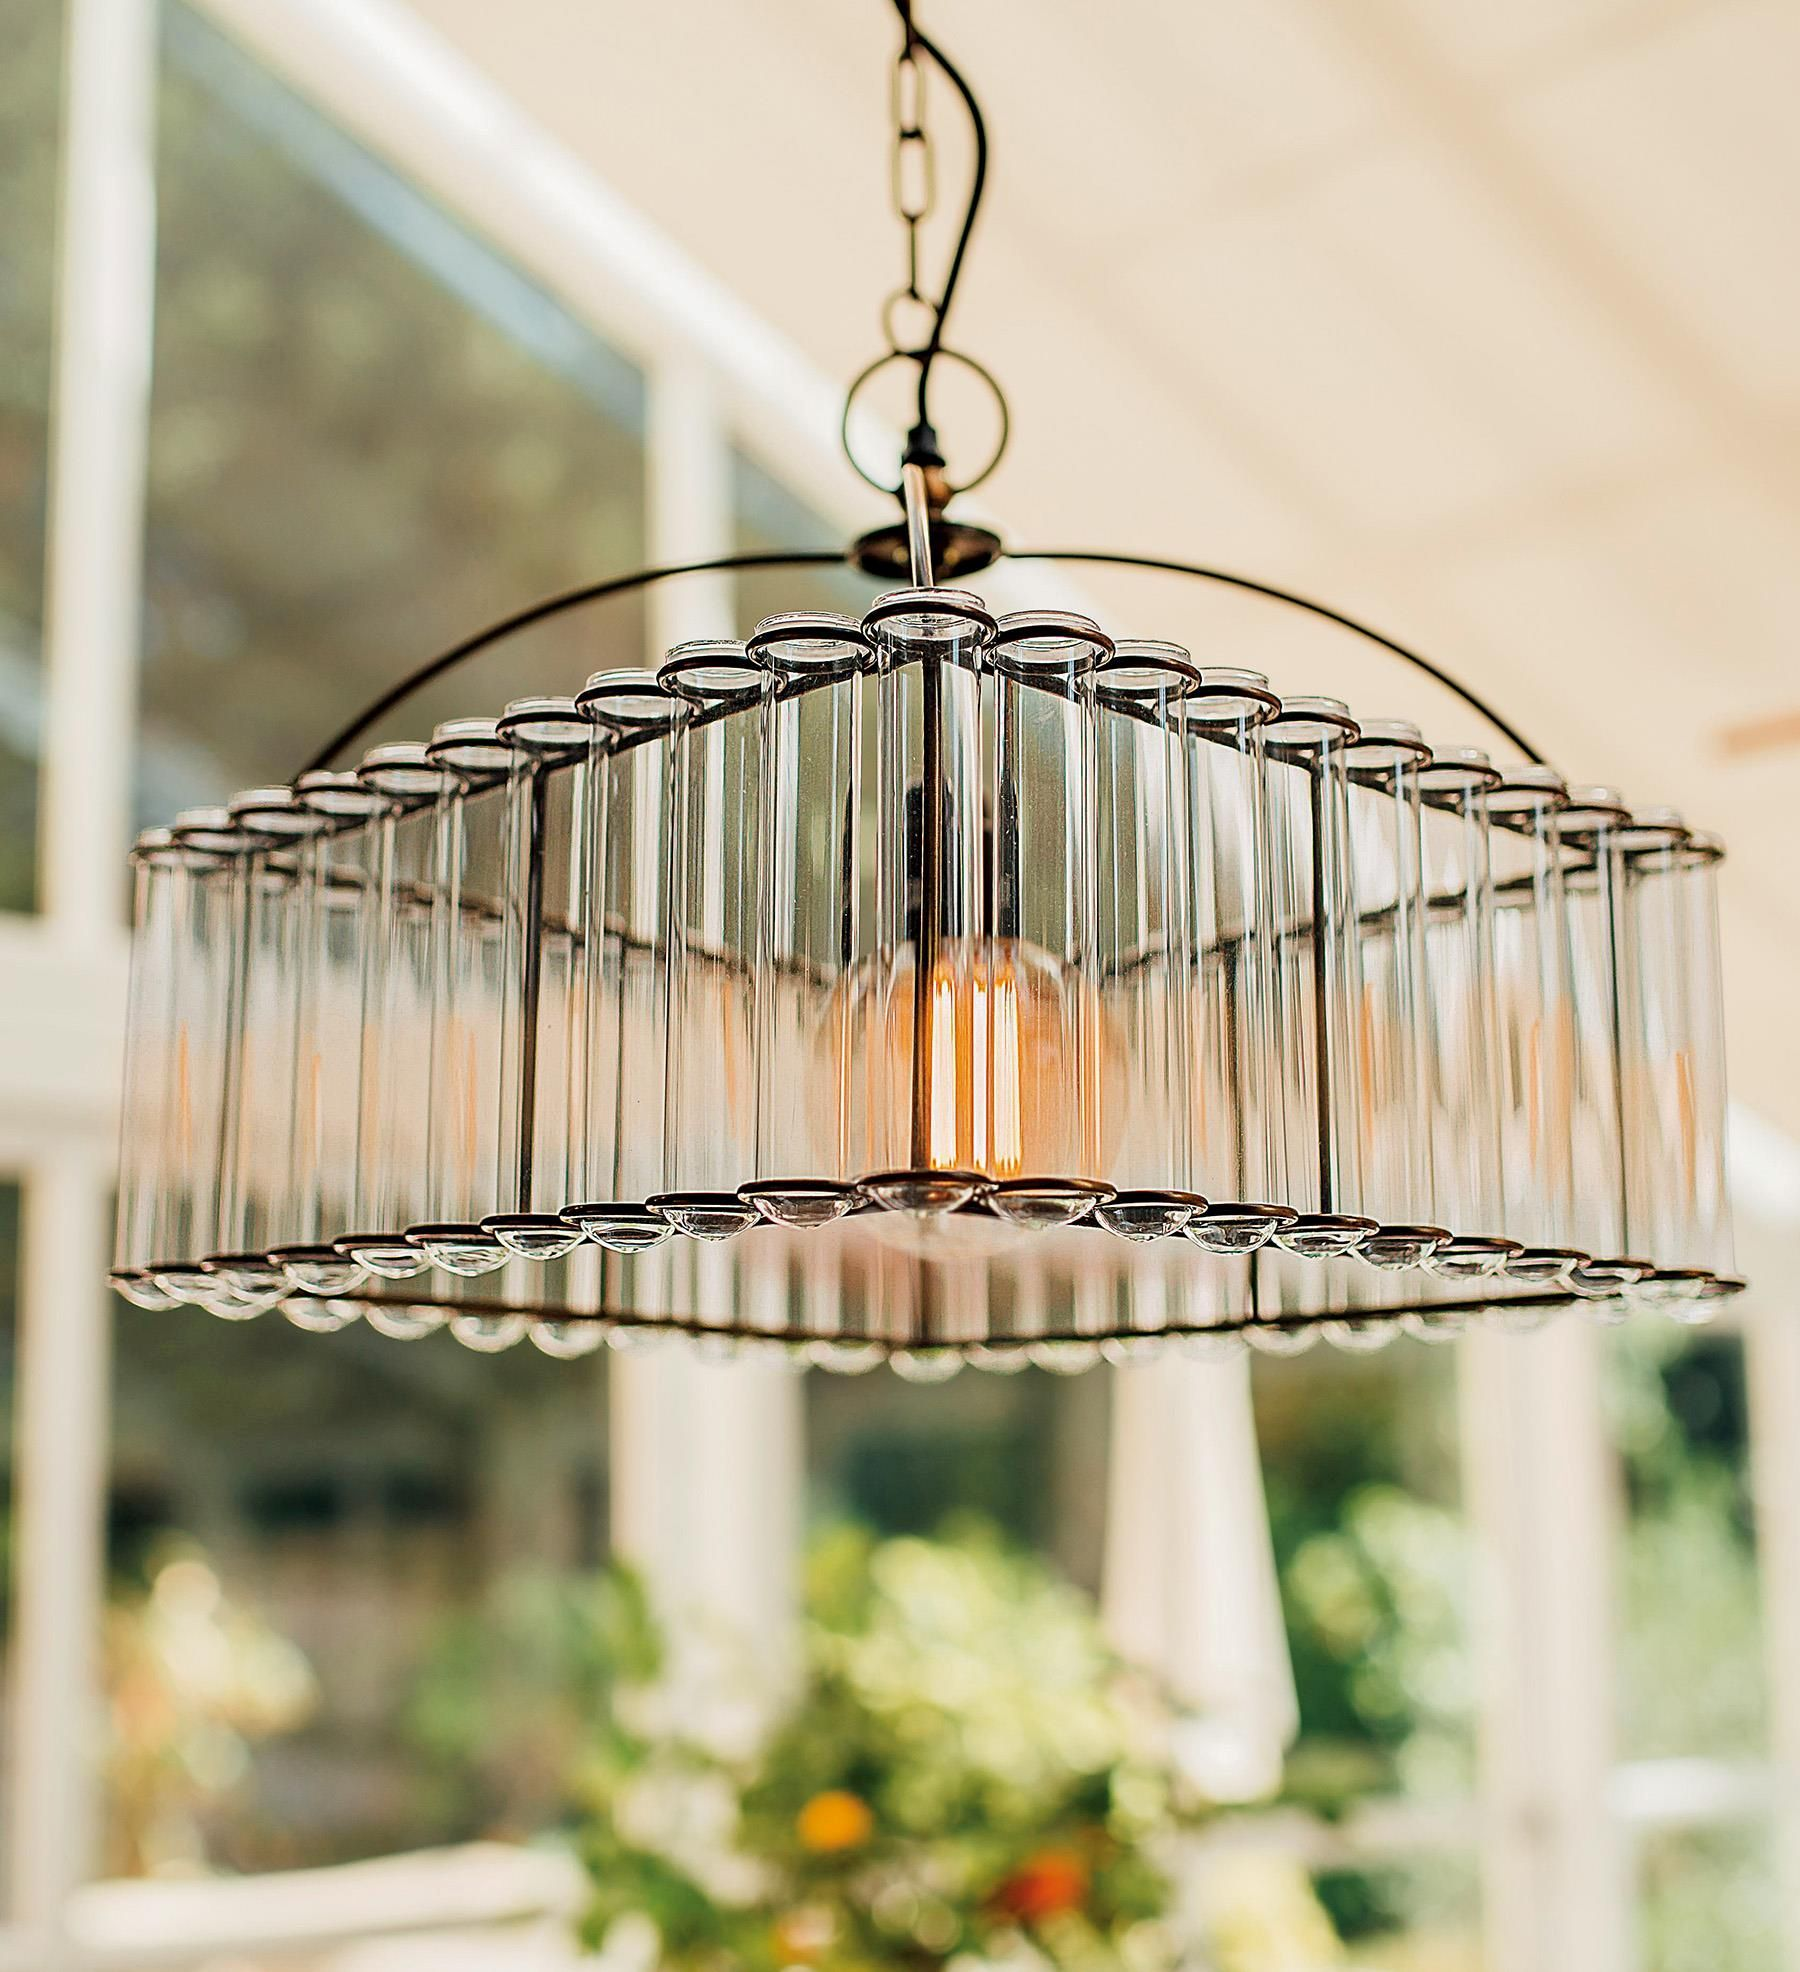 Buy culinary concepts brass pasteur square test tube chandelier buy culinary concepts brass pasteur square test tube chandelier from the next uk online shop aloadofball Gallery